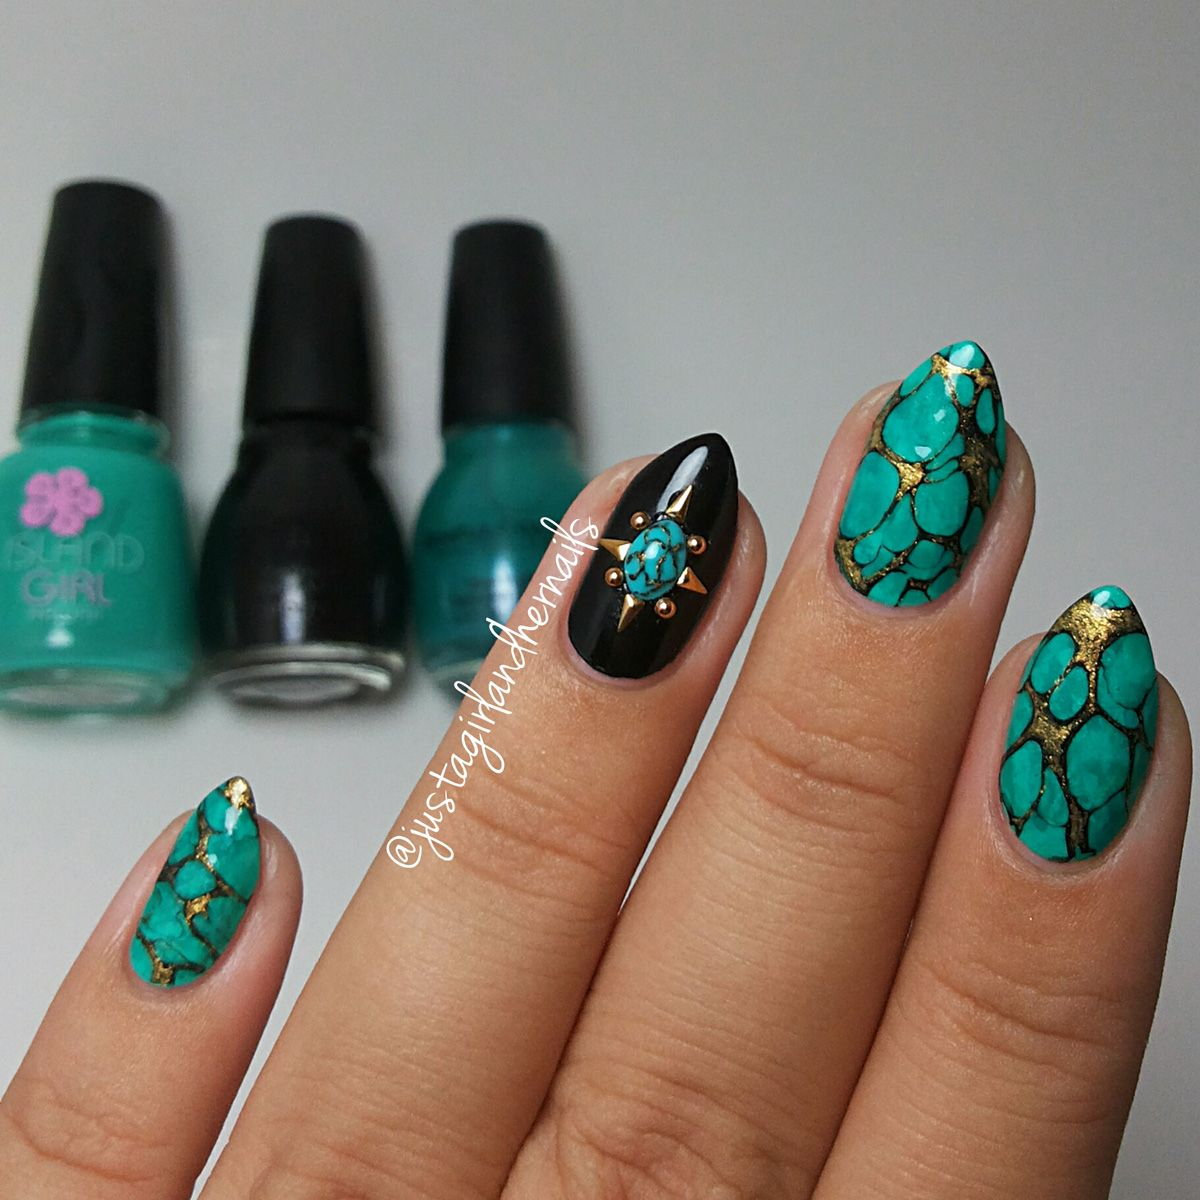 Nail Art Tutorial: Electric Turquoise | Nails in 2018 ...